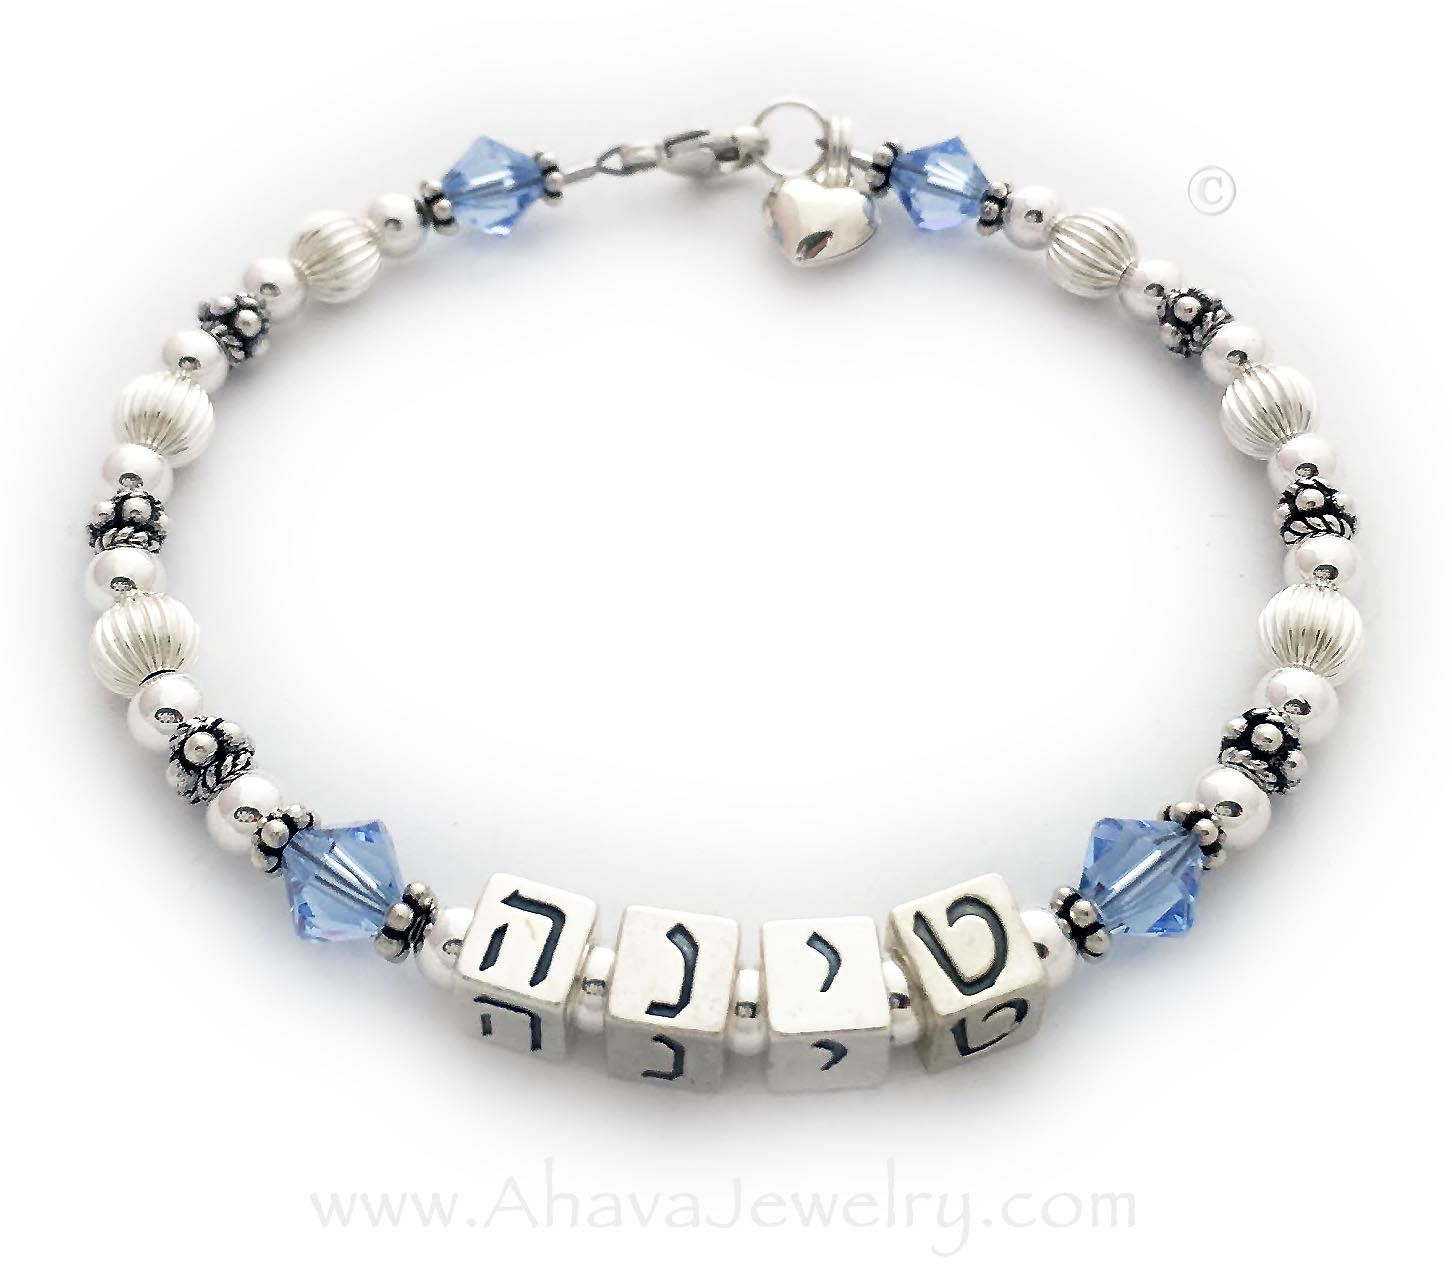 Tina in Hebrew AJ-S1  with February Birthstone Crystals and a lobster claw clasp. They added a Small Puffed Heart charm. Size: 7""